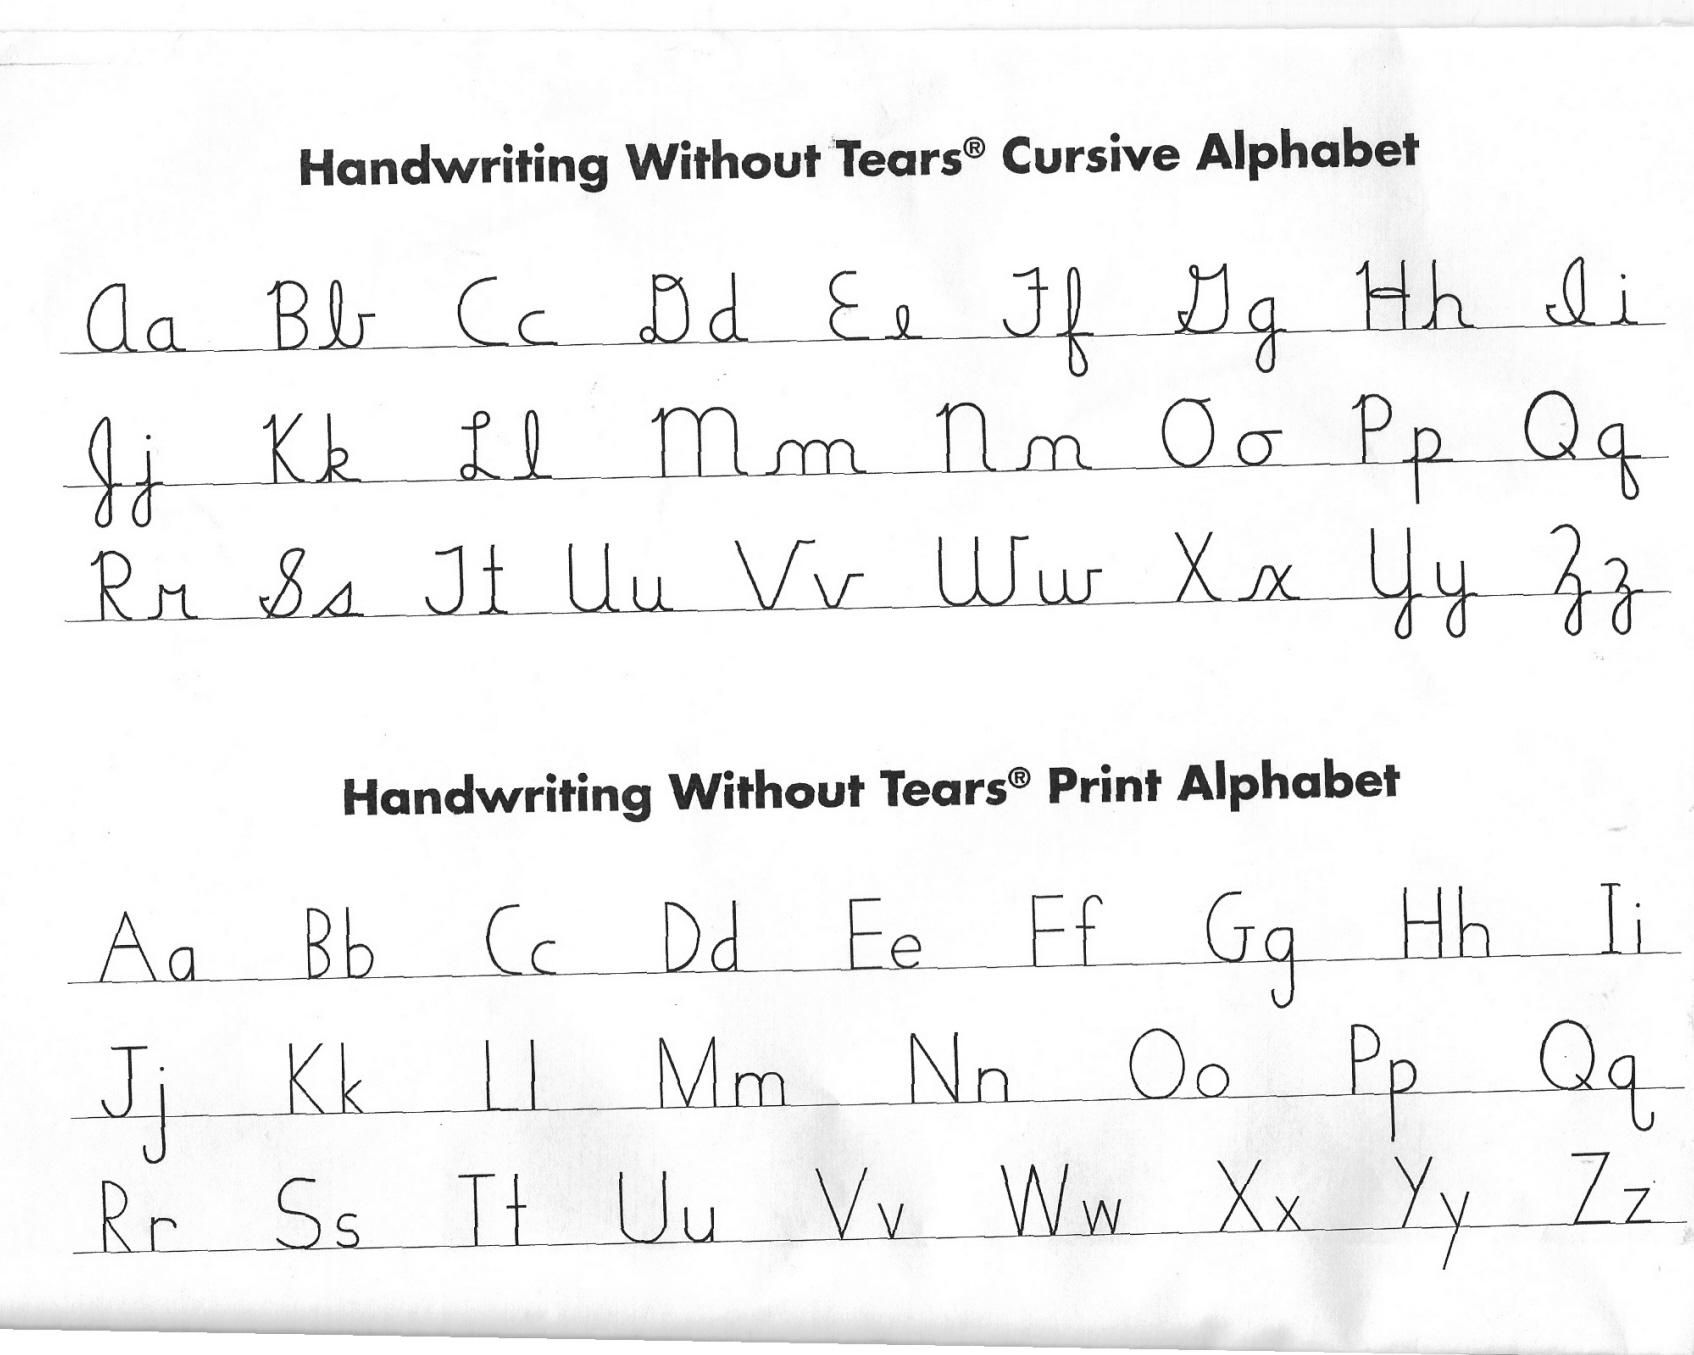 Printables Handwriting Without Tears Cursive Worksheets worksheet handwriting without tears cursive worksheets gallery 1 21